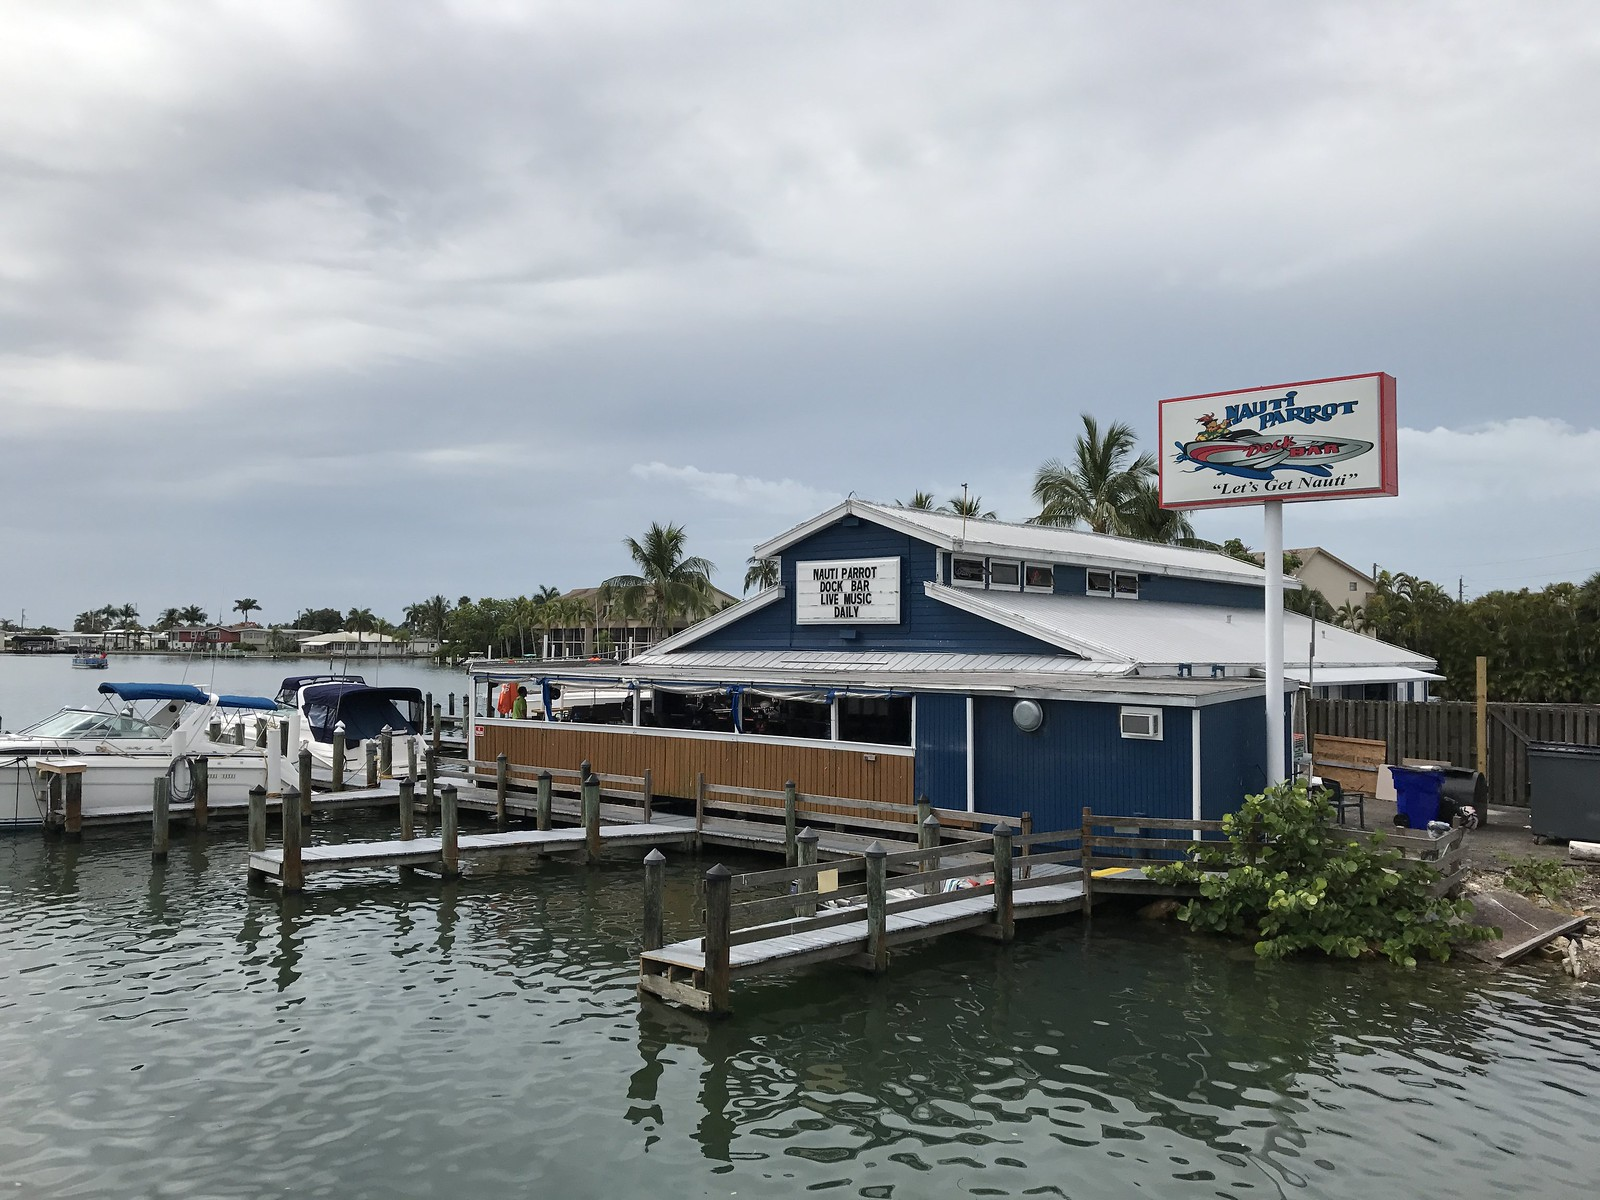 Nauti Parrot Dock Bar, Fort Myers Beach, Fla.